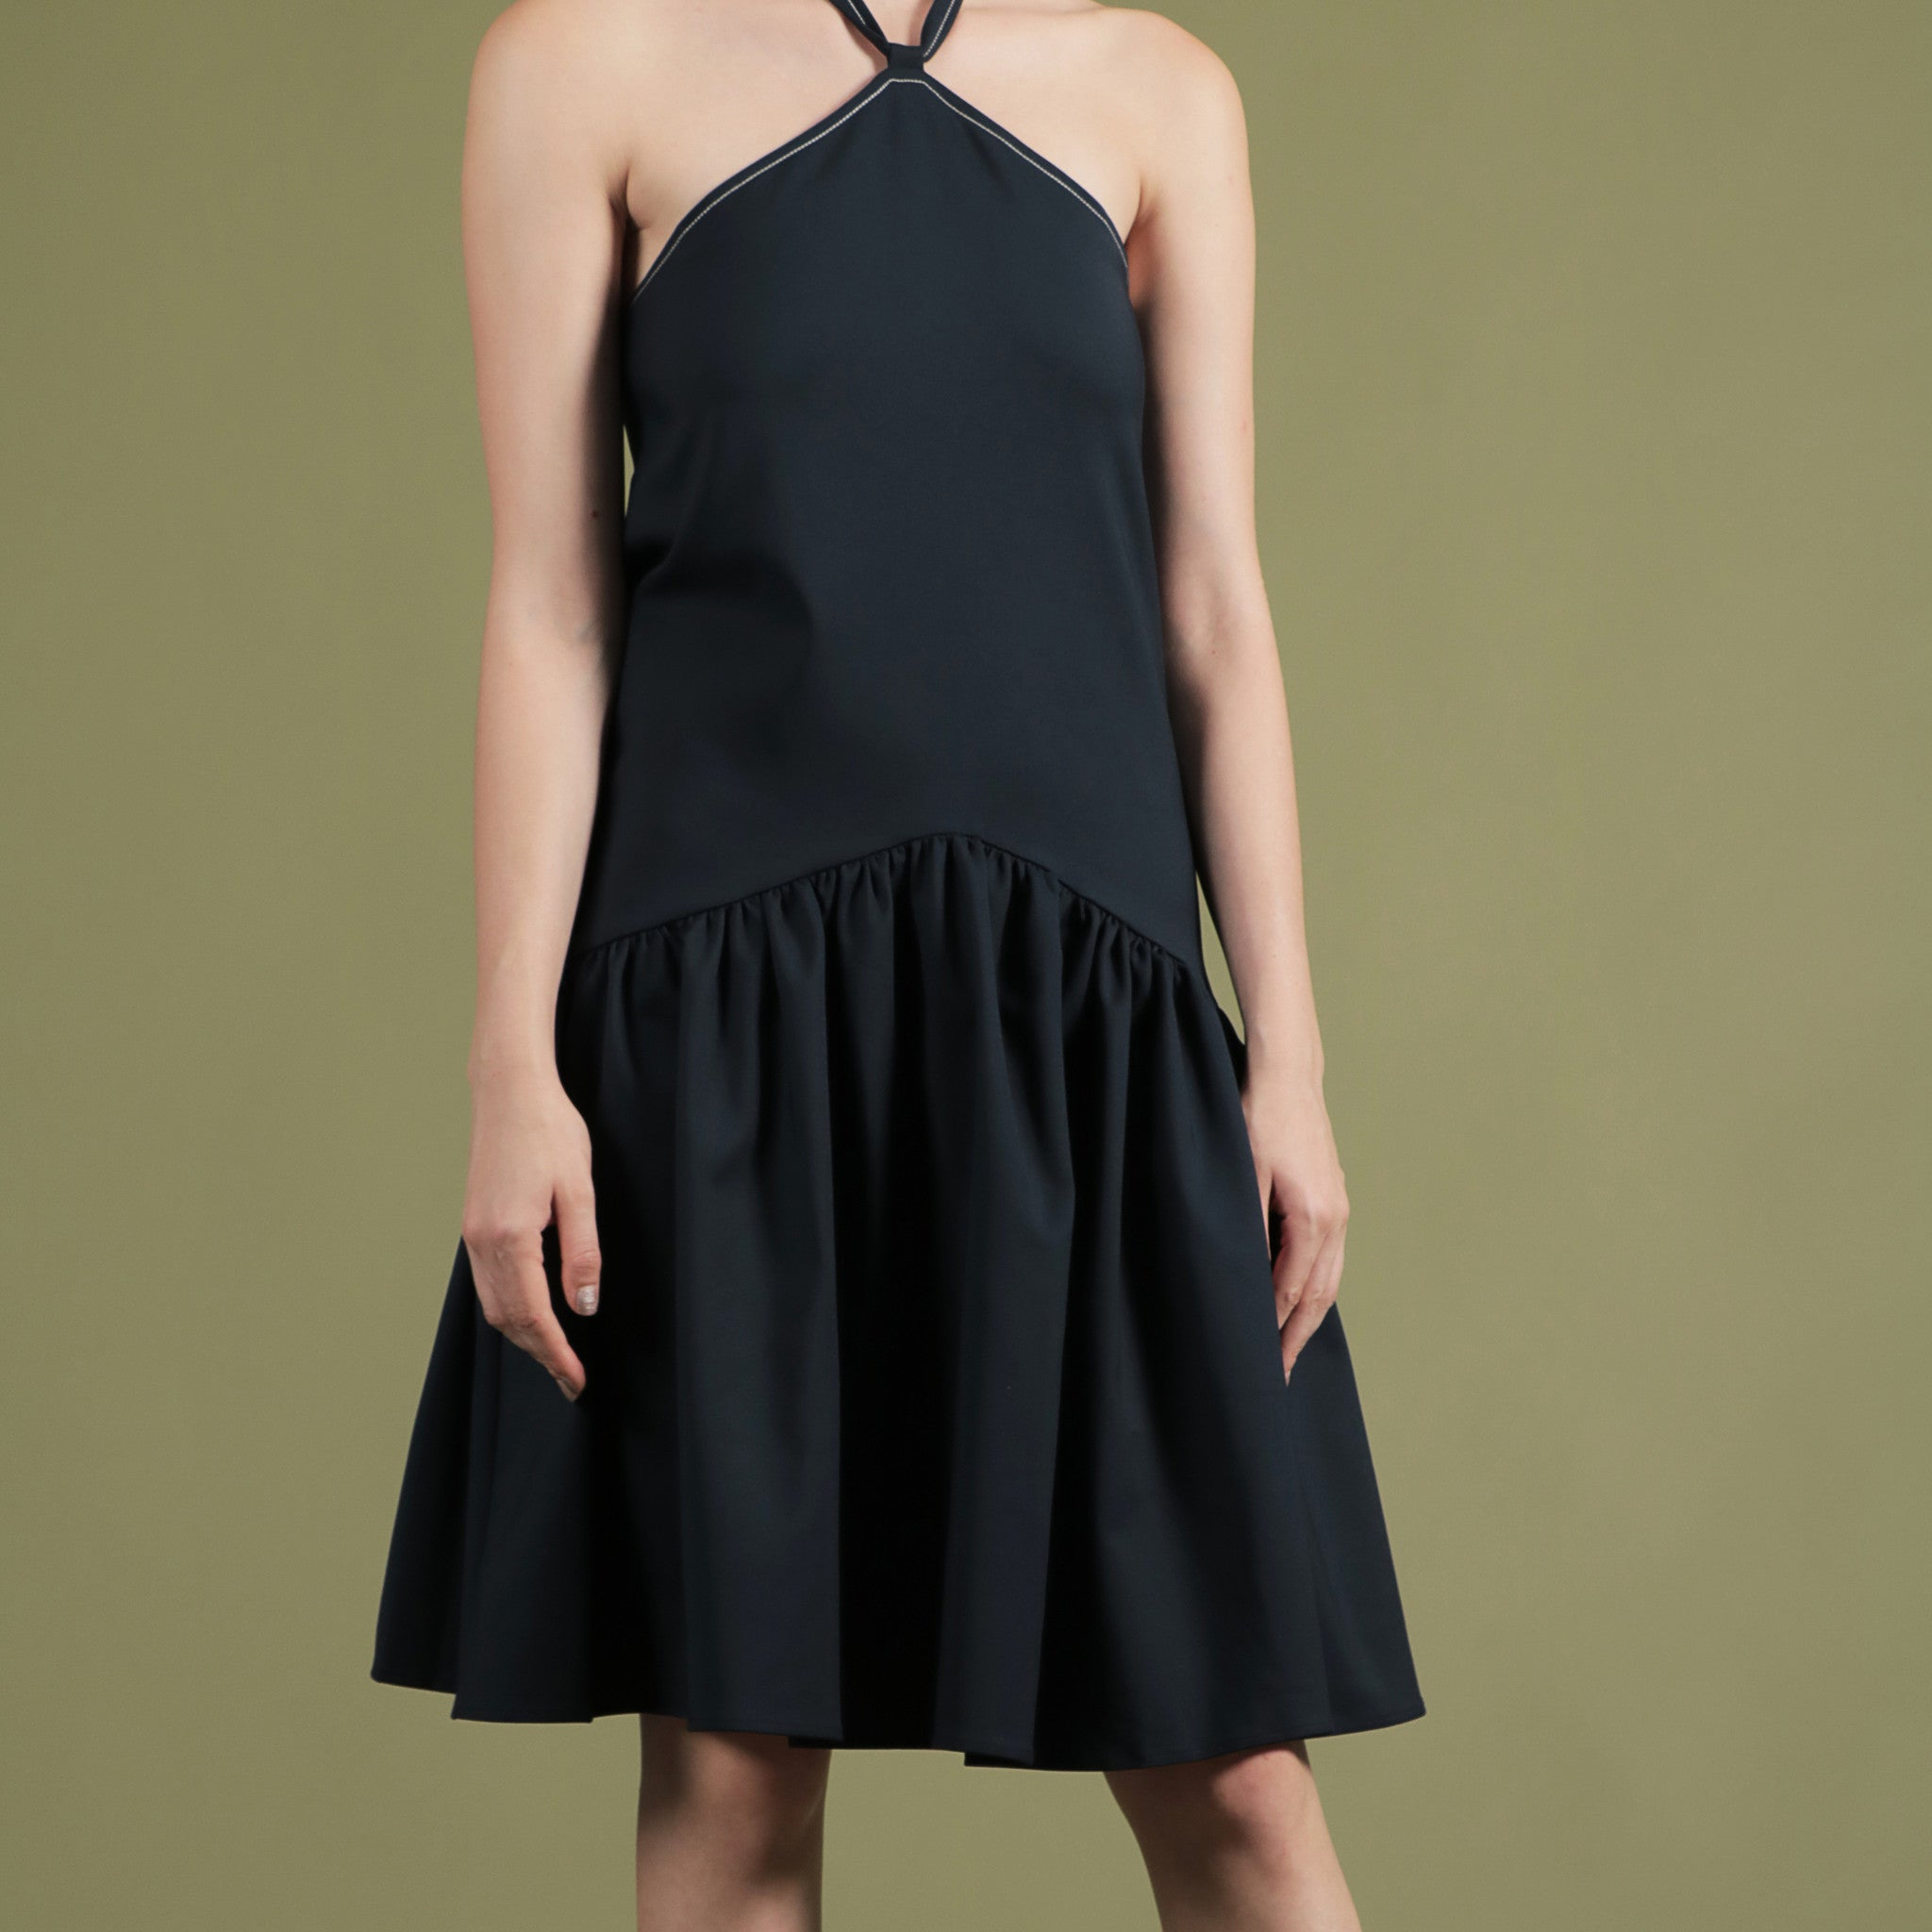 NOIR BY SOIGNÉ<br> HIGH NECK DRESS WITH CONTRAST STITCHING